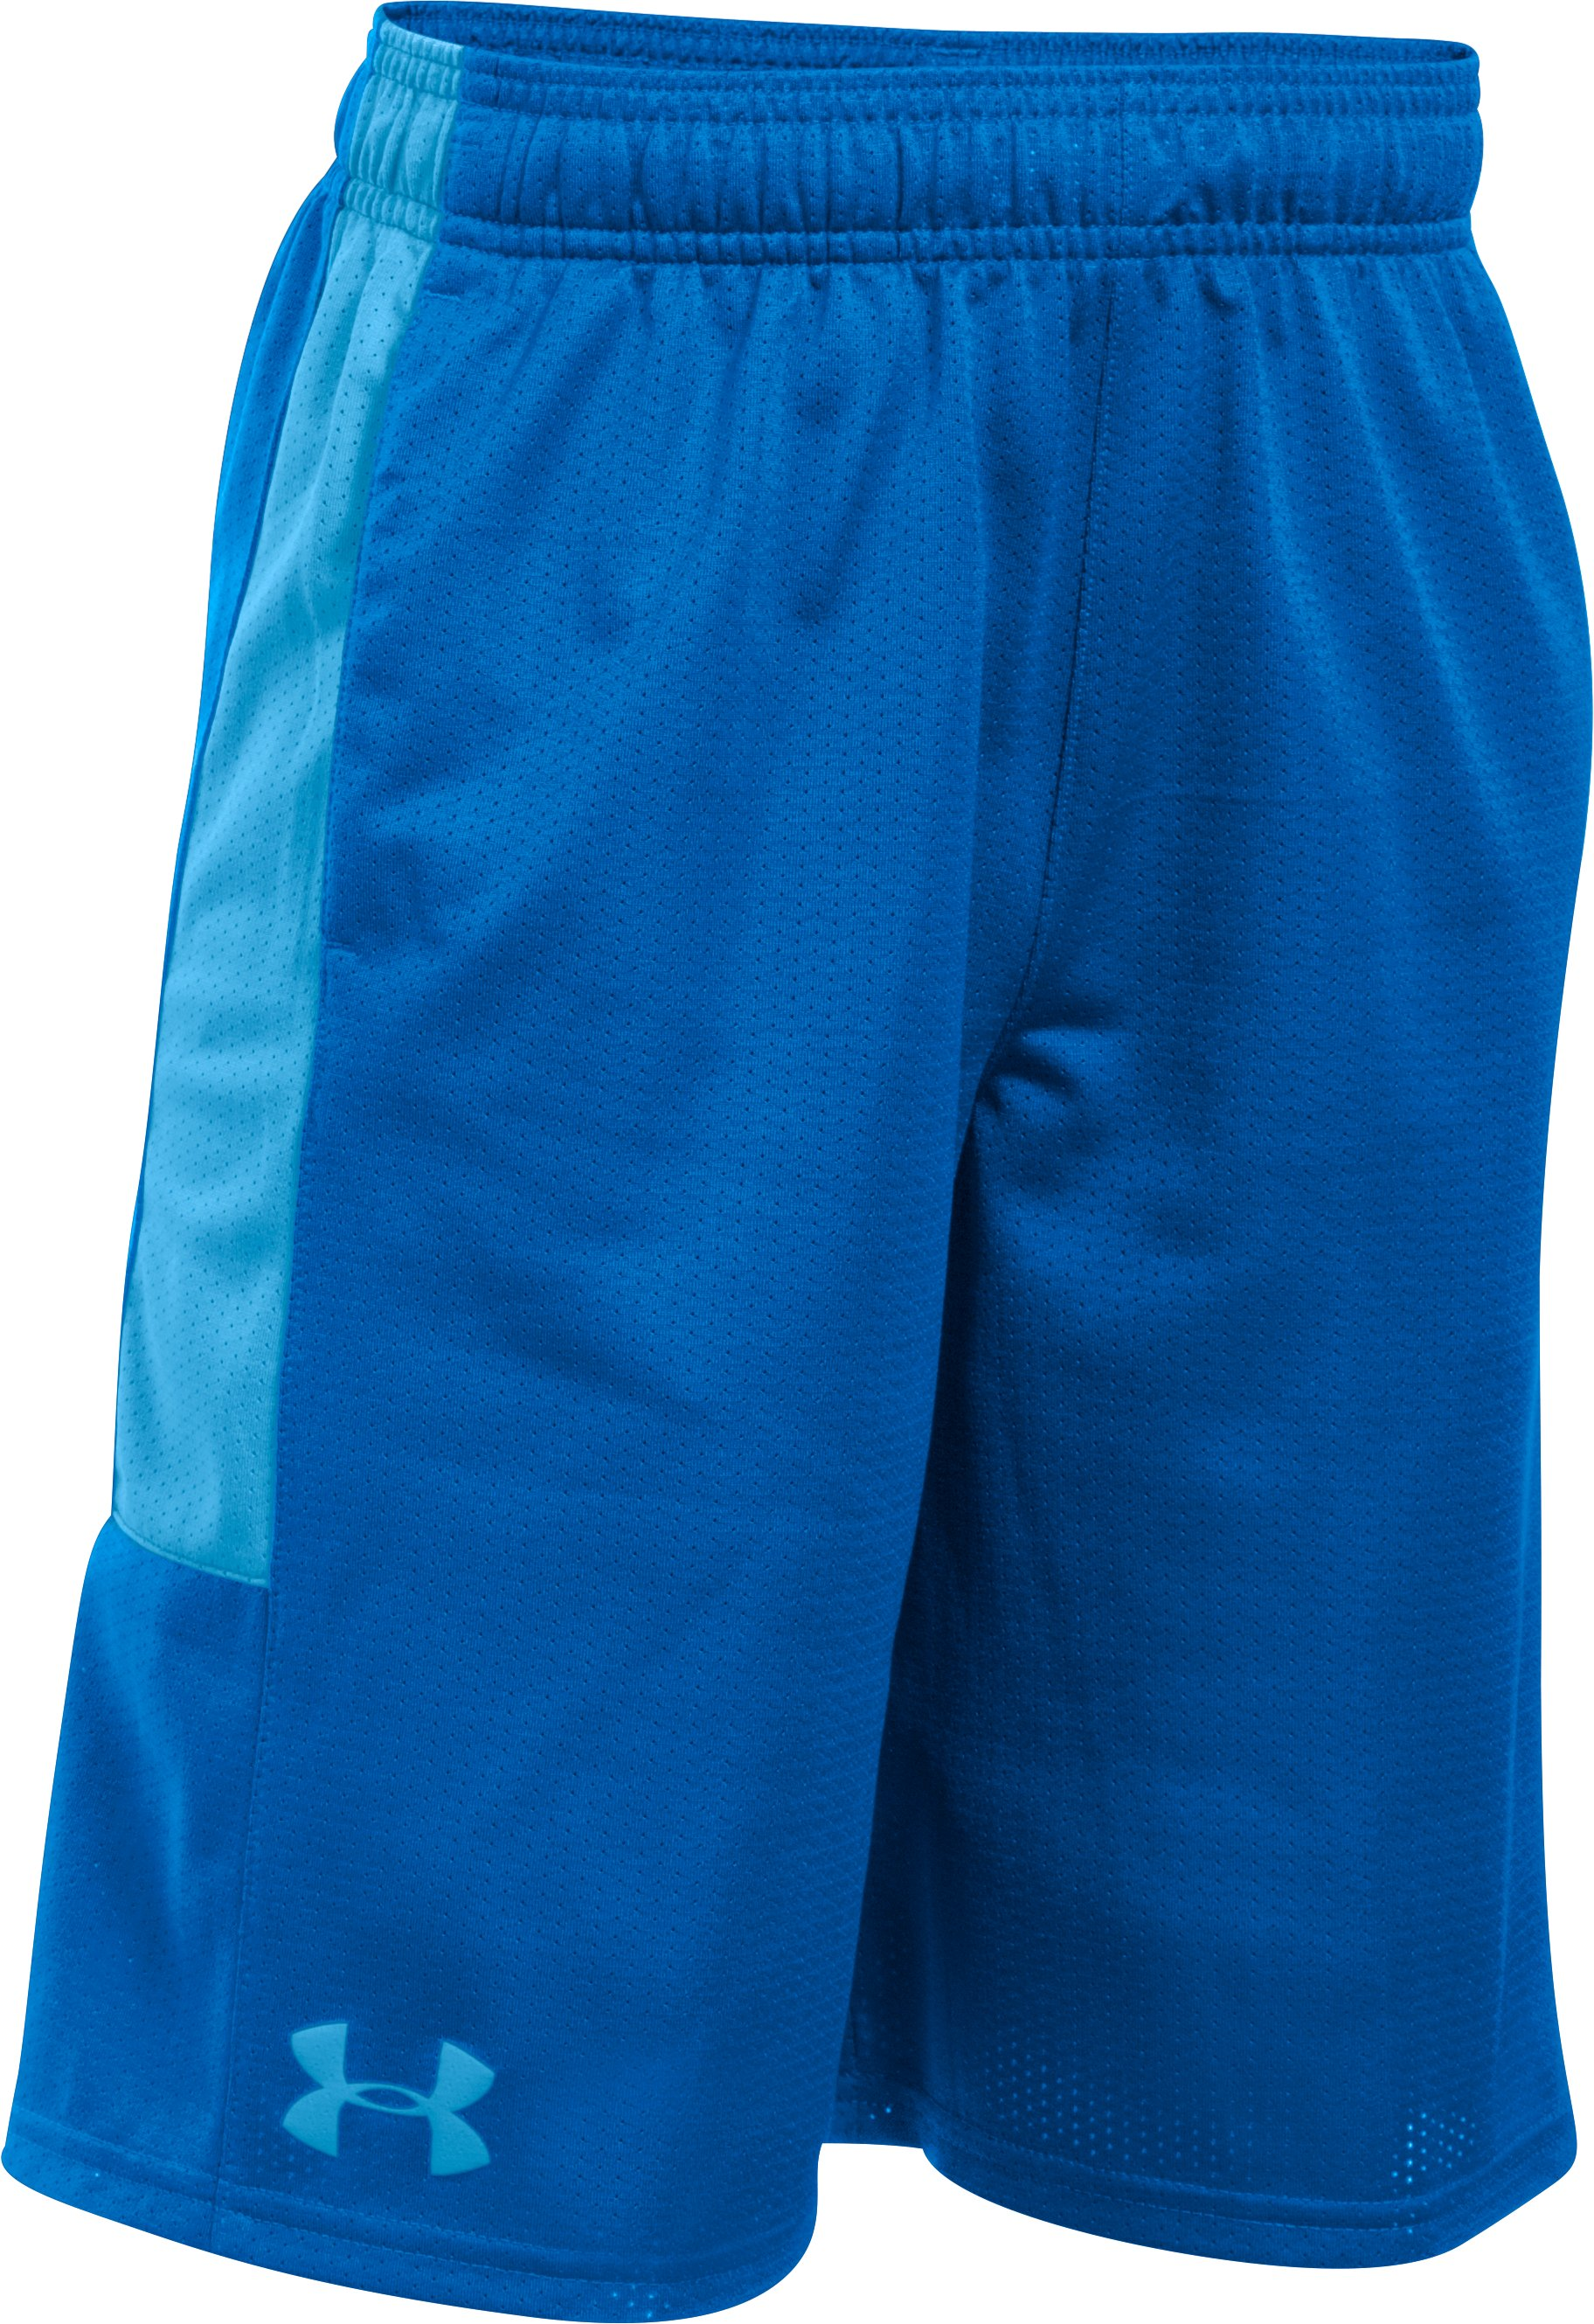 Boys' UA Instinct Mesh Shorts, ULTRA BLUE